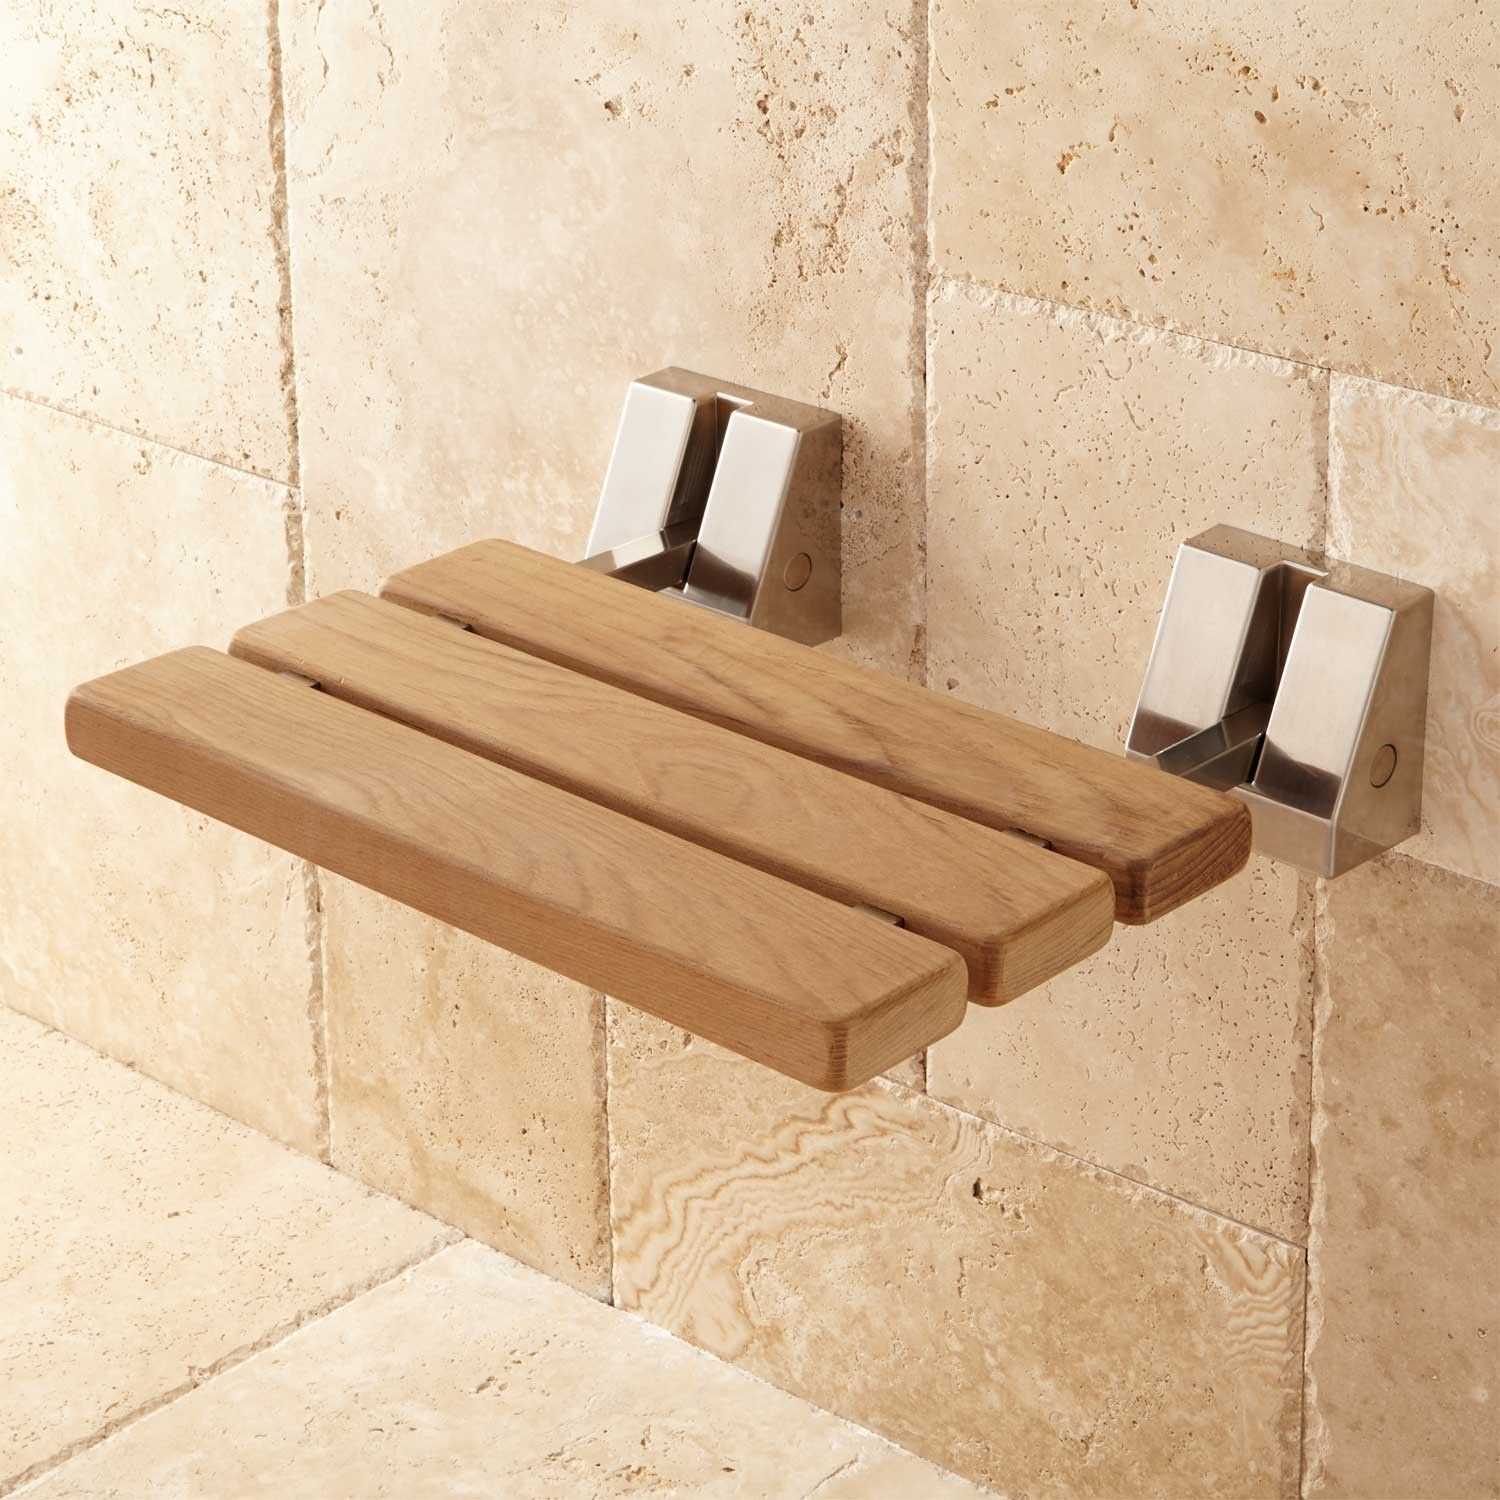 Wall-Mount Teak Folding Shower Seat | Bathroom remodel | Pinterest ...